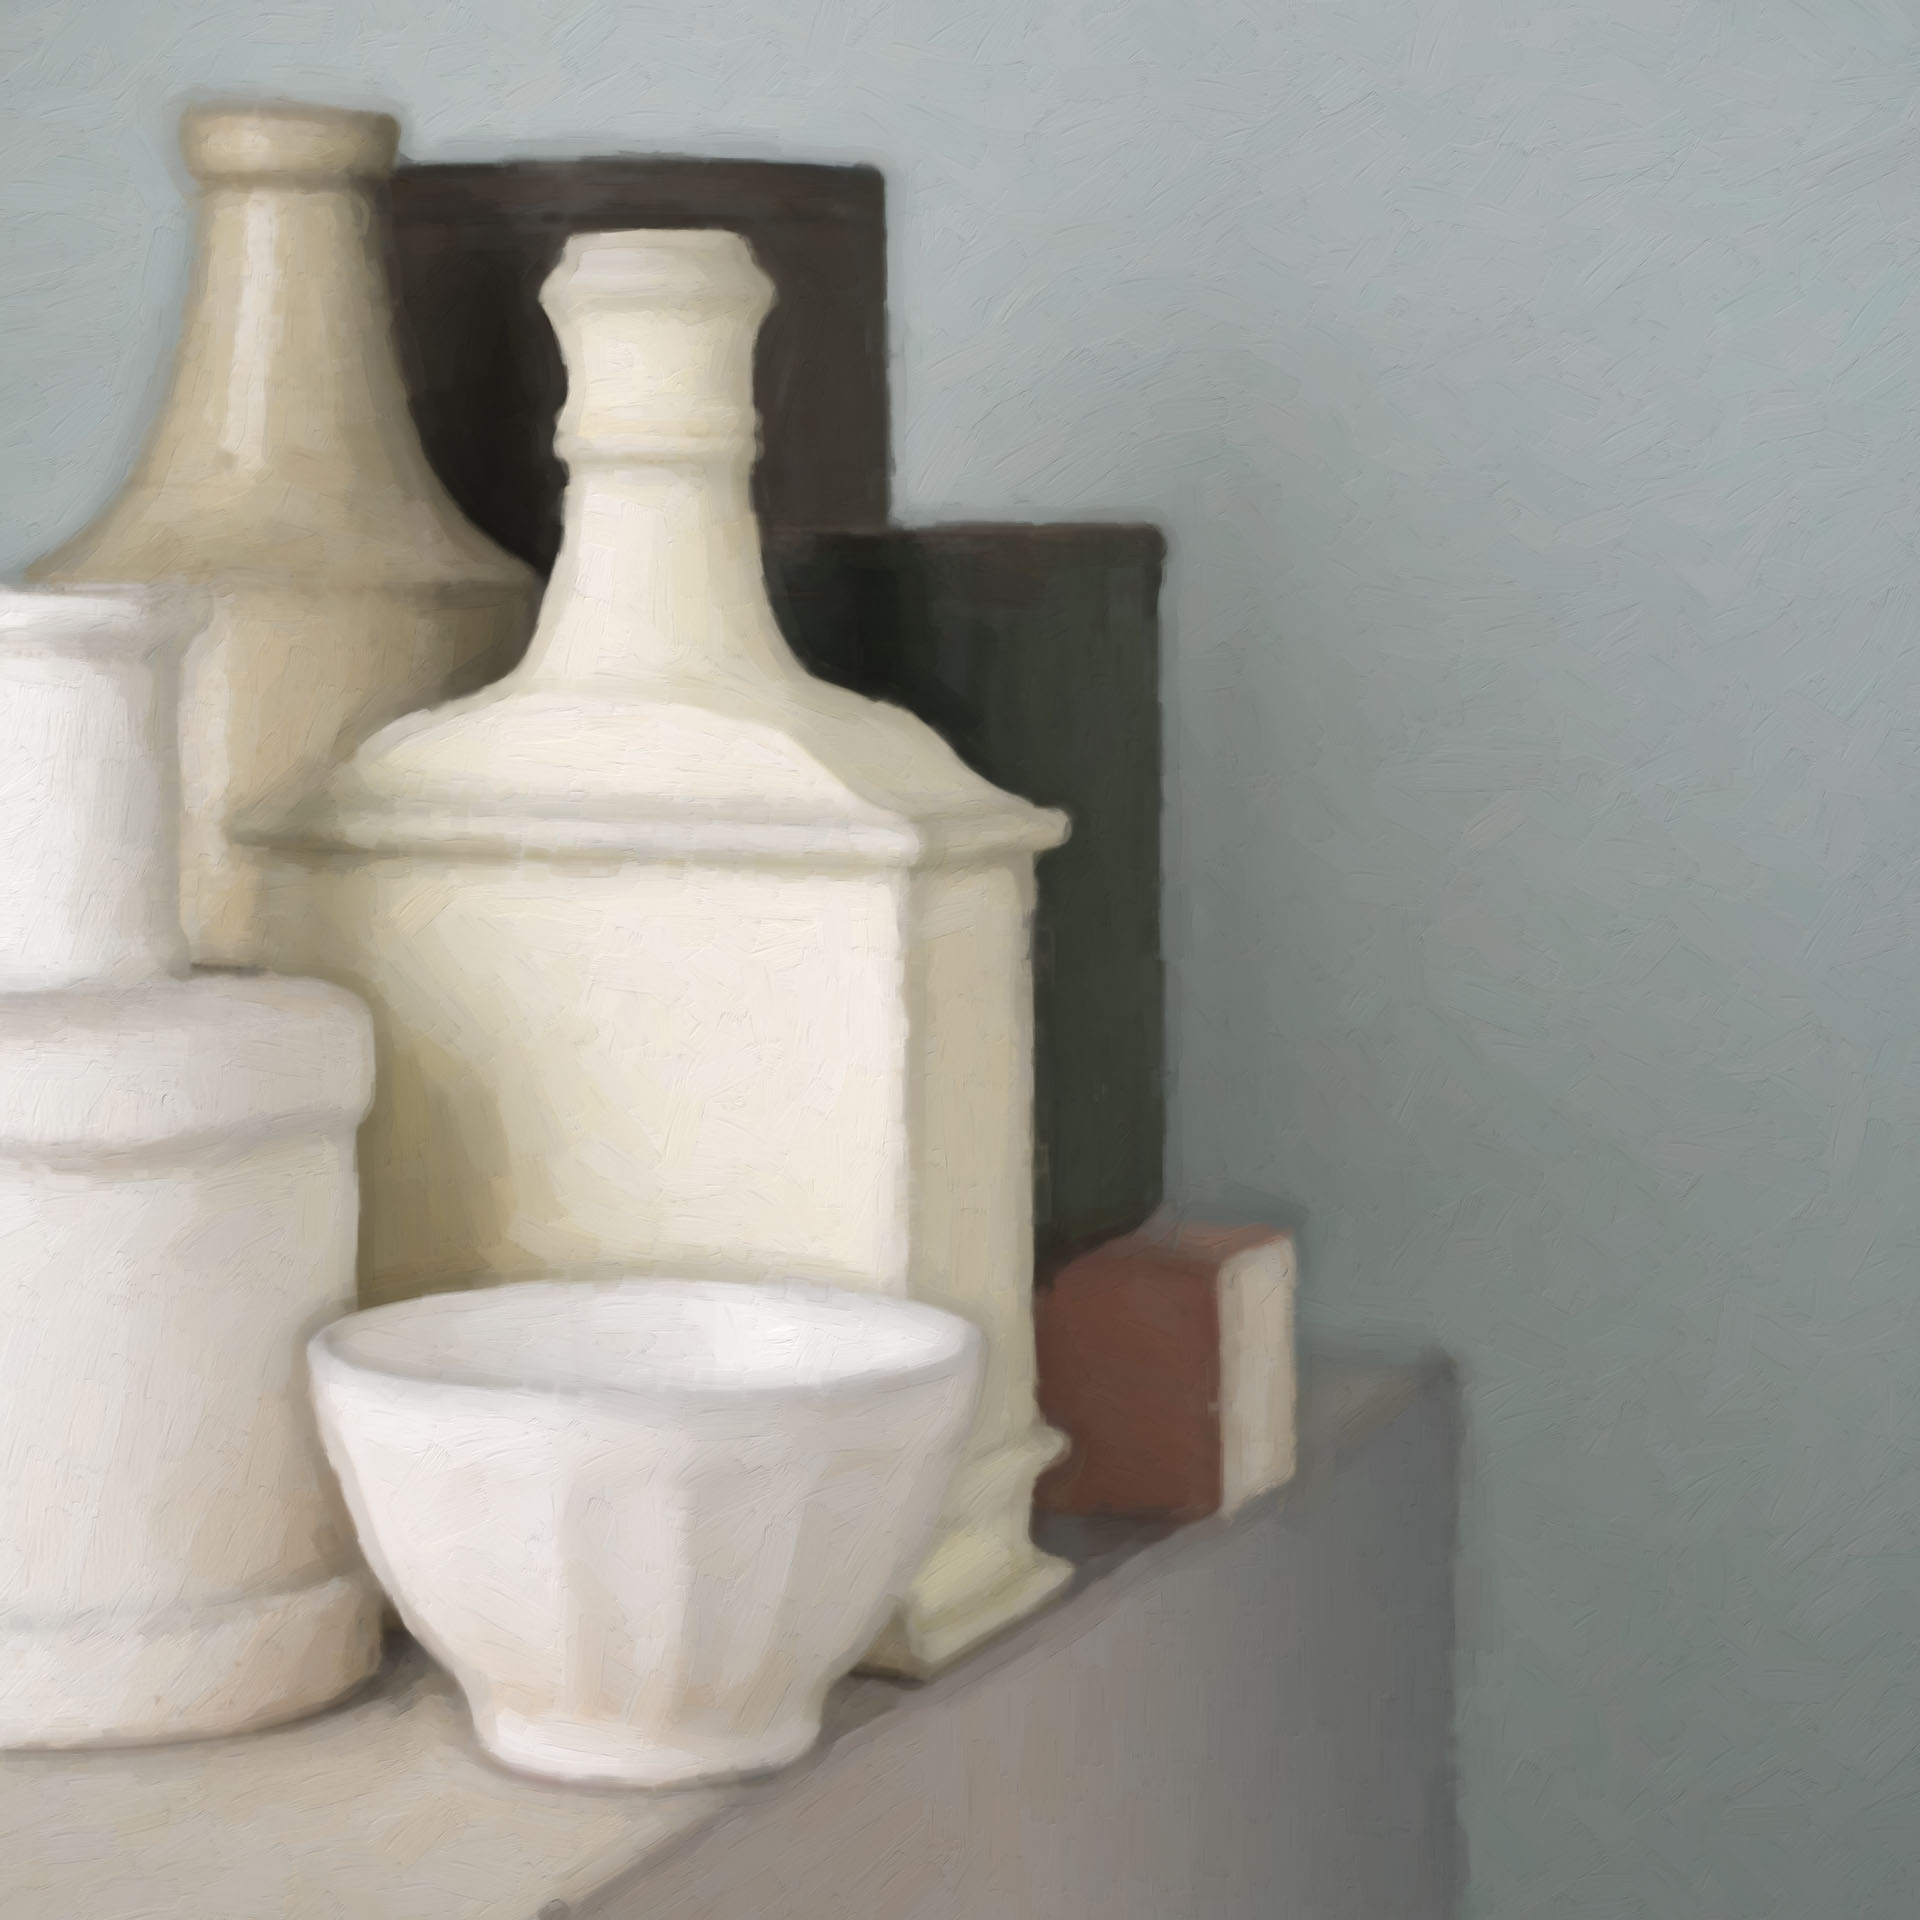 Morandi on the edge 9